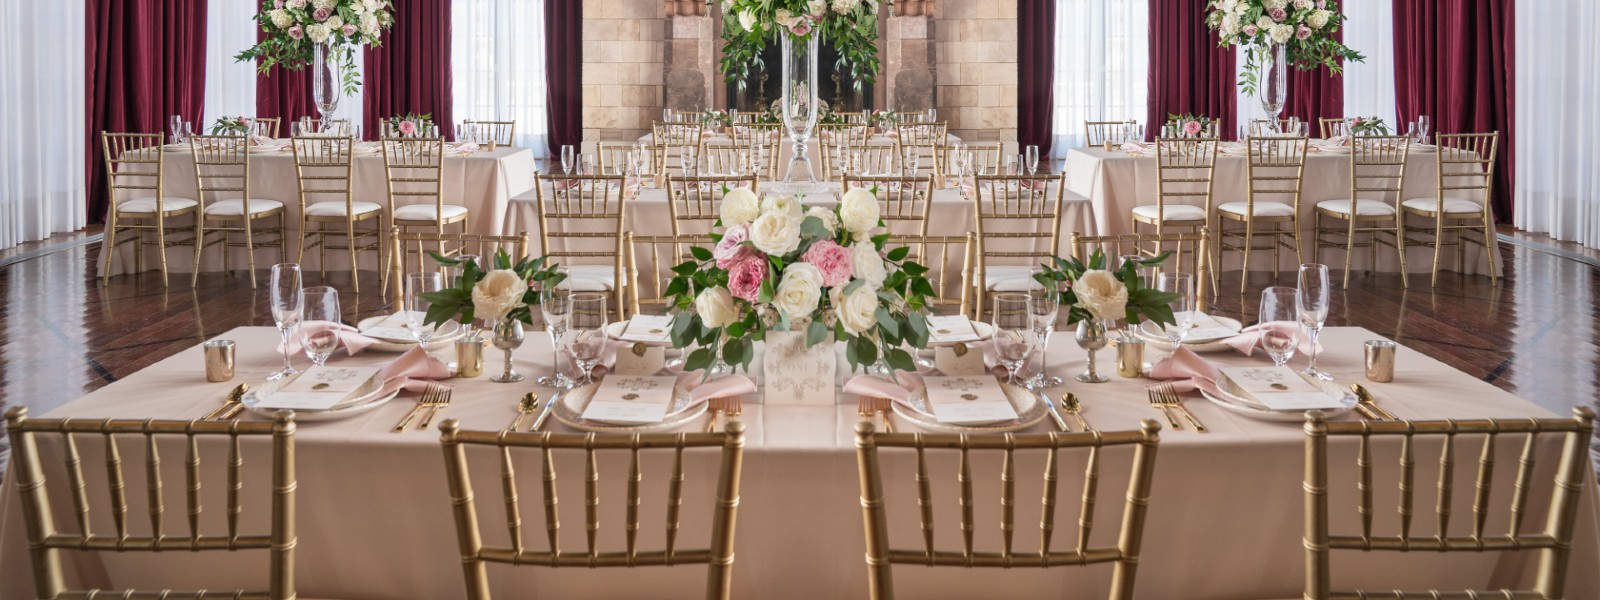 Special event rentals in Richmond